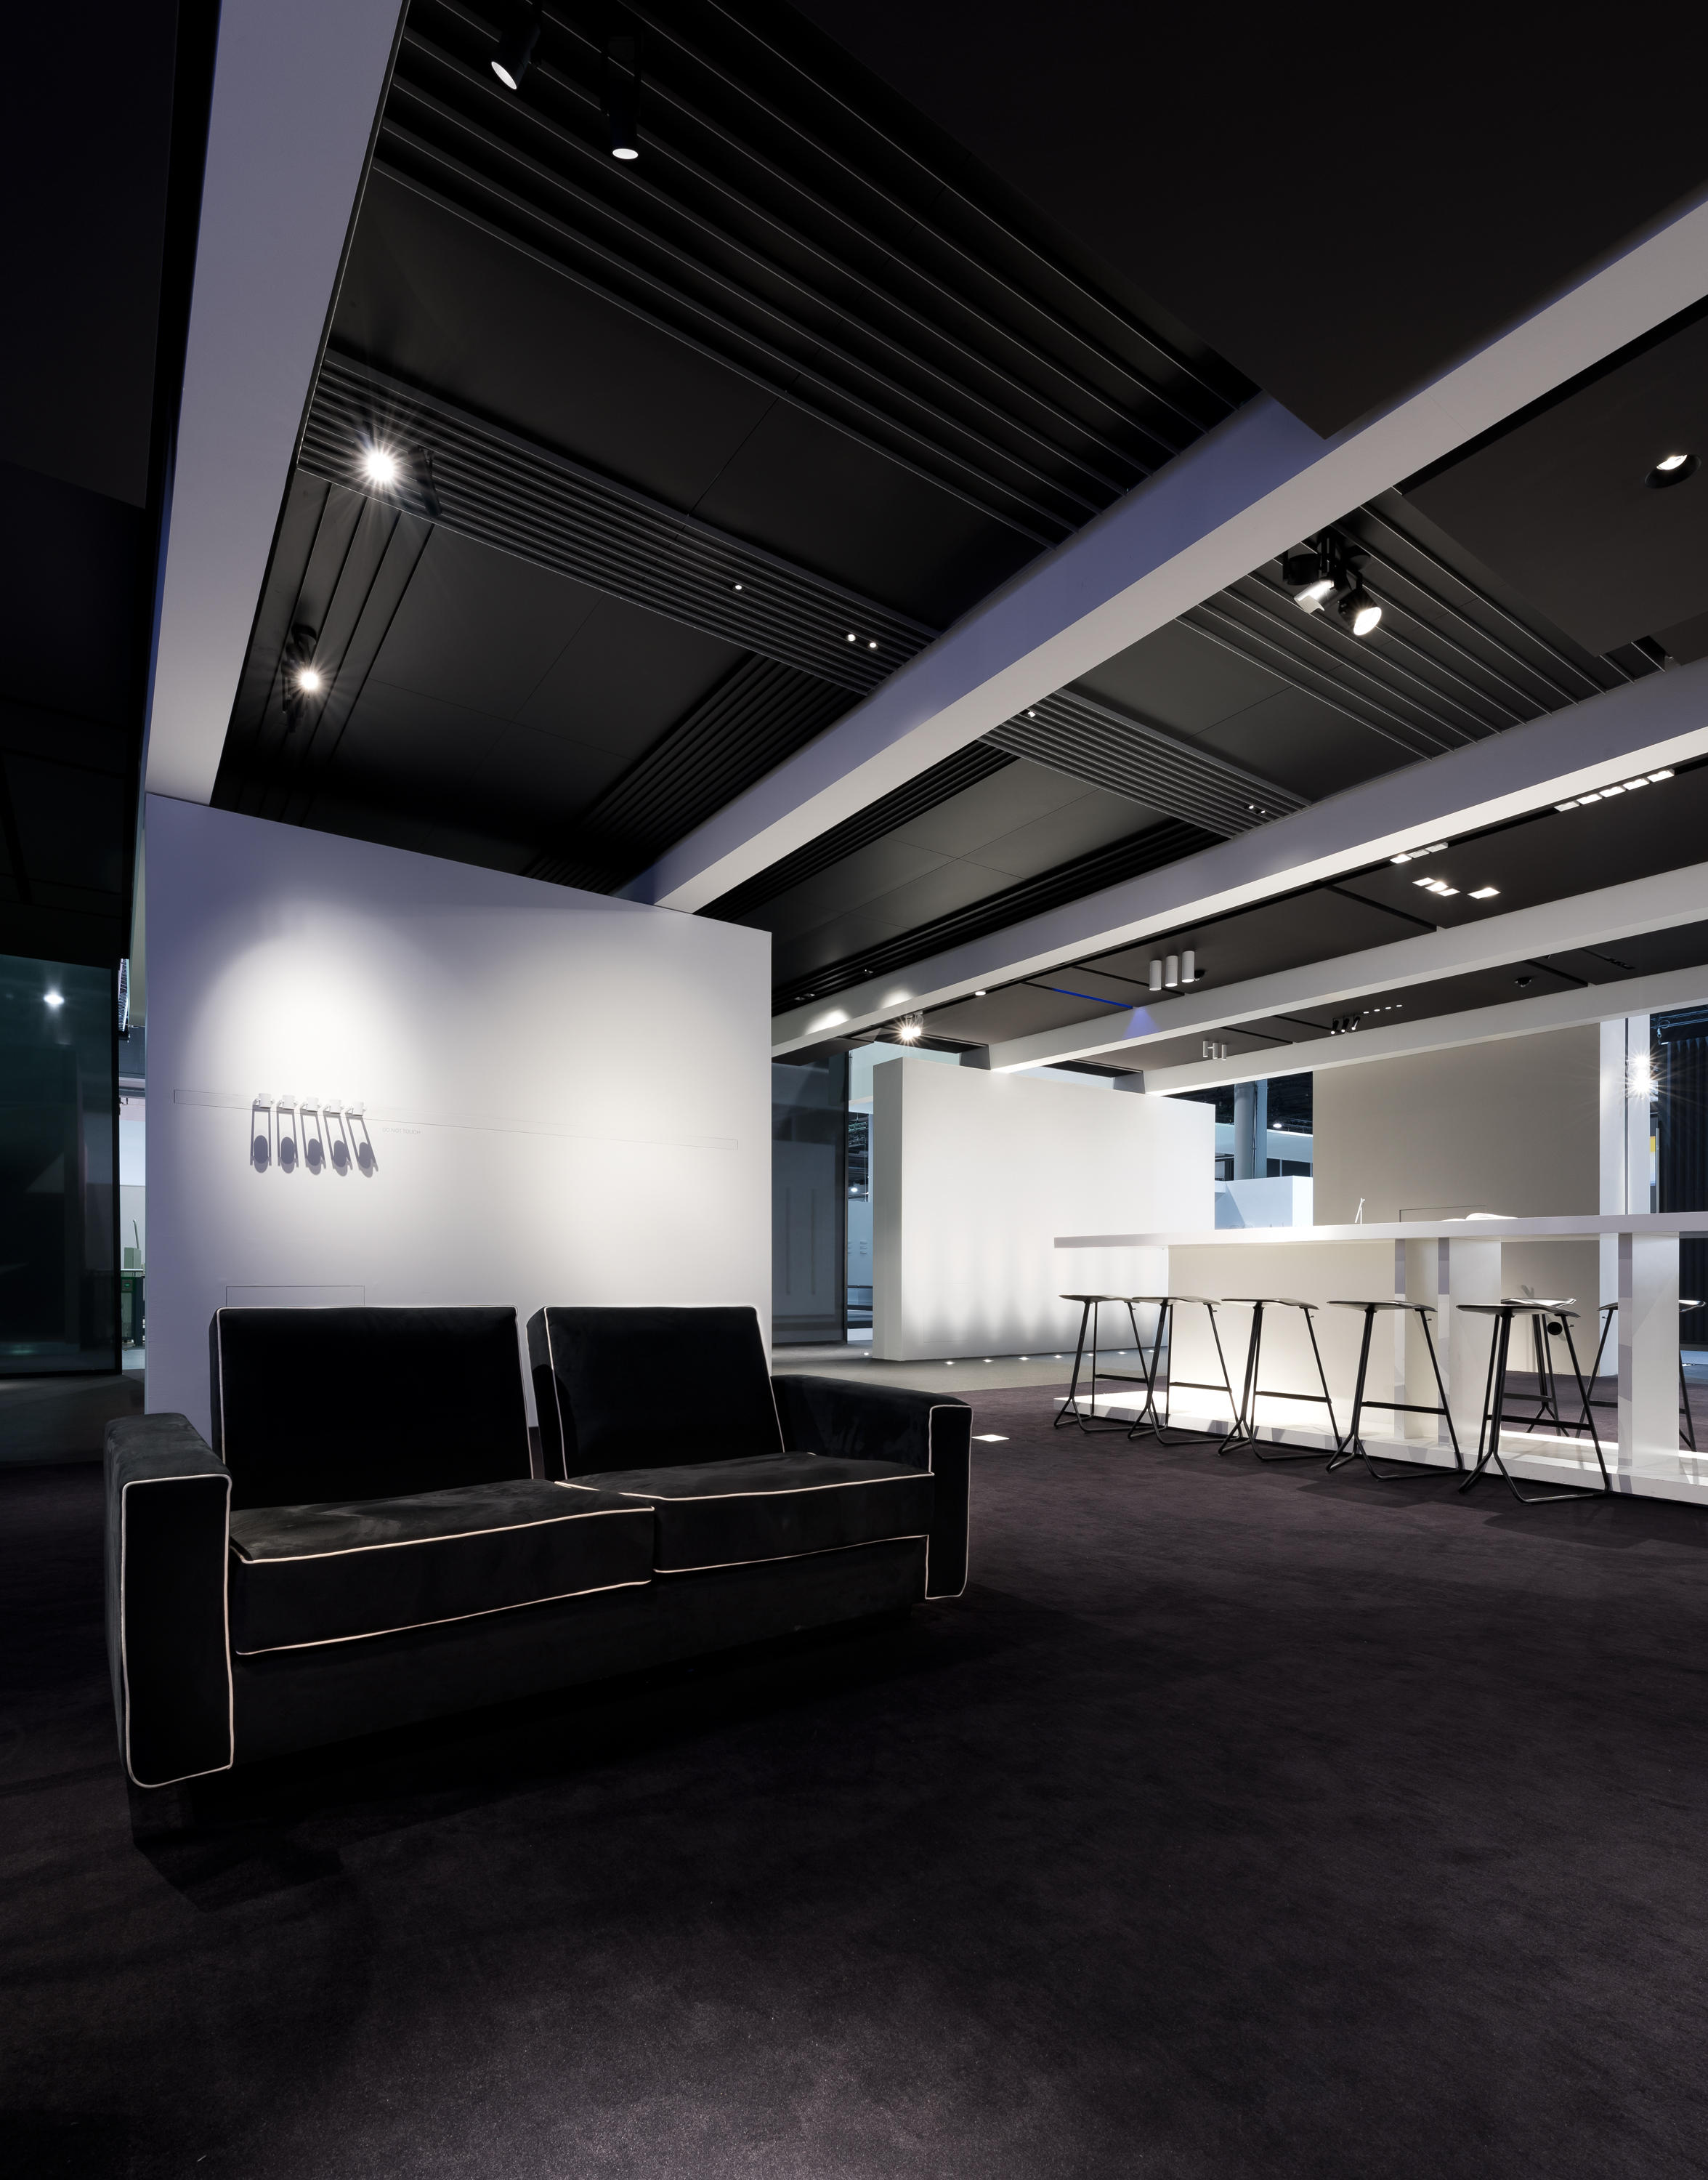 RYTMI - Suspended ceilings from Kreon | Architonic